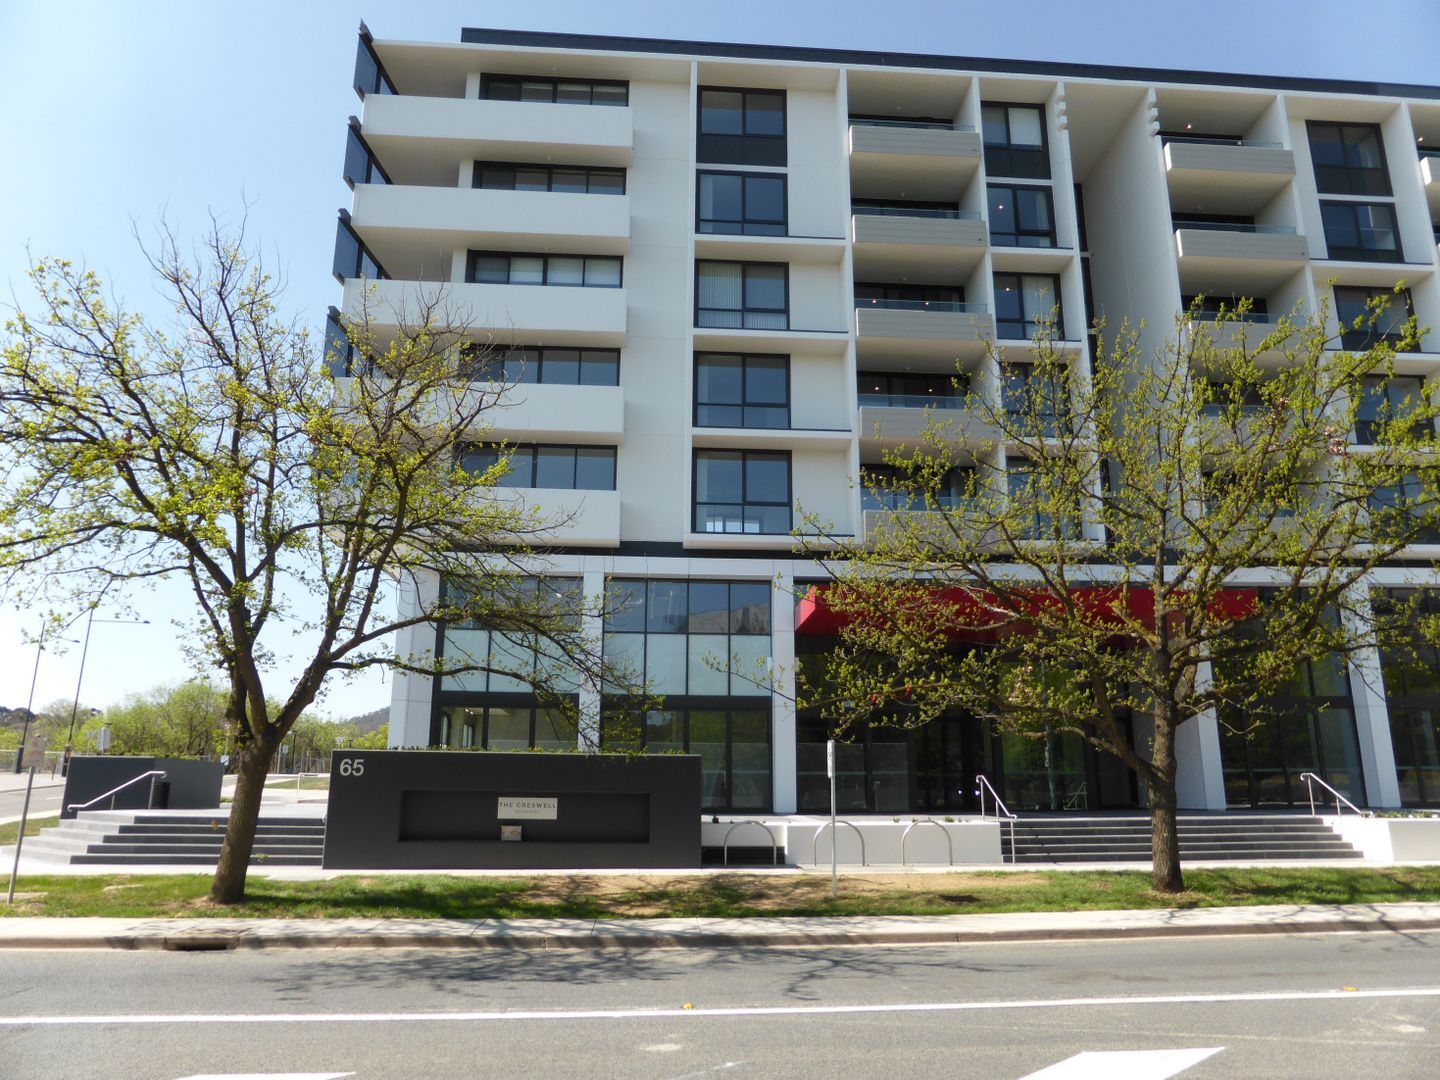 23/65 Constitution Avenue, Campbell ACT 2612, Image 0